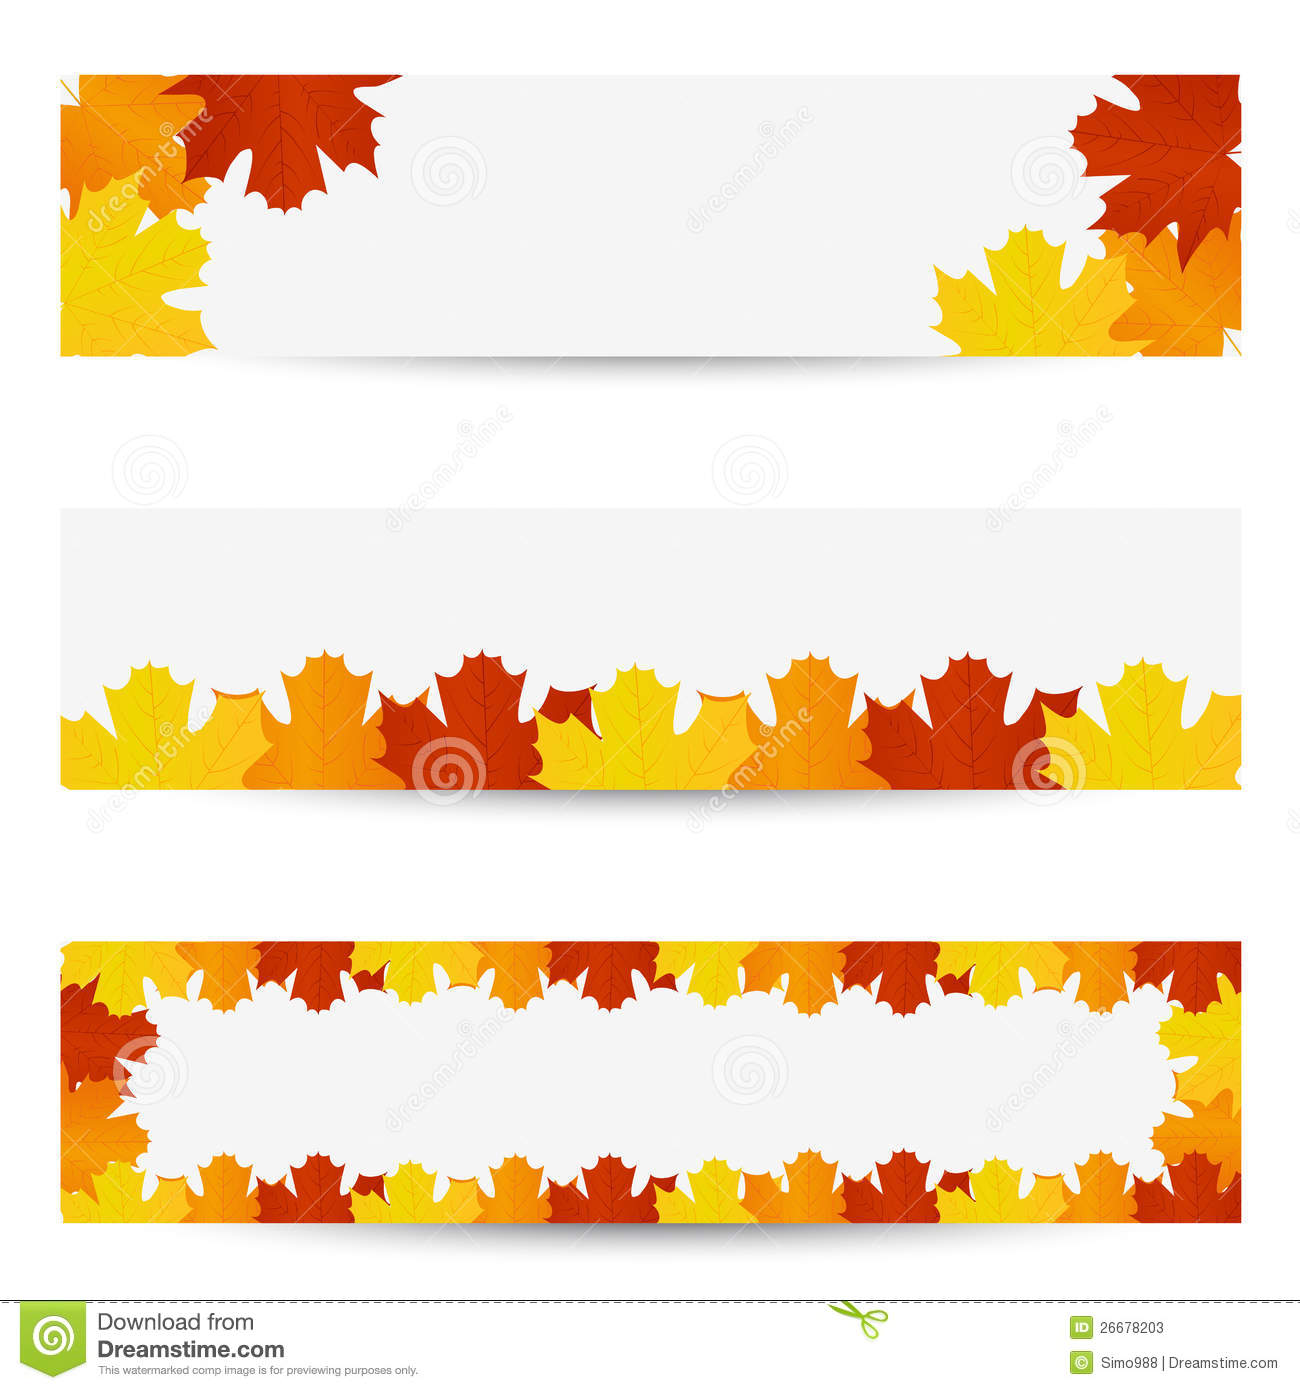 Autumn leaves banners stock vector. Illustration of ...